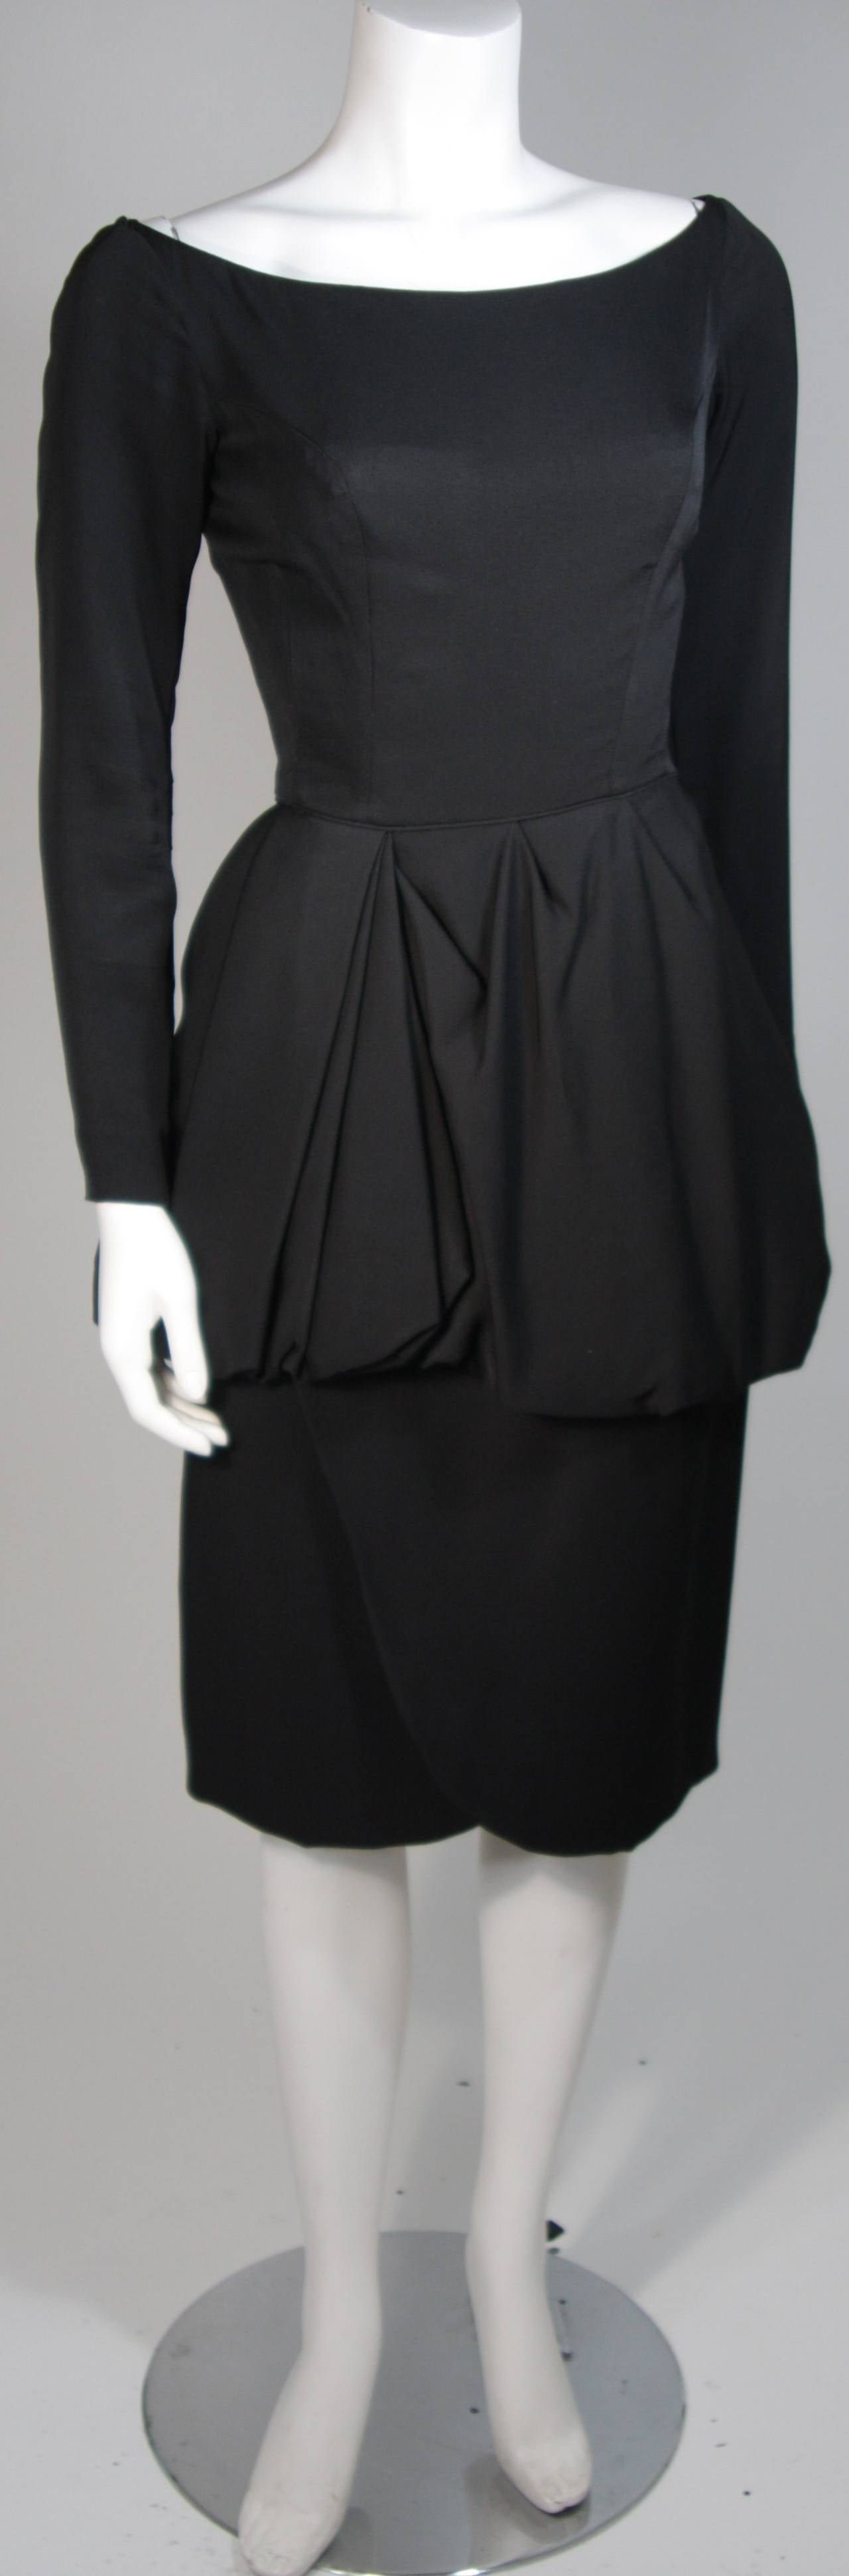 Ceil Chapman 1950's Black Cocktail Dress with Draped Peplum Detail Size Small 3